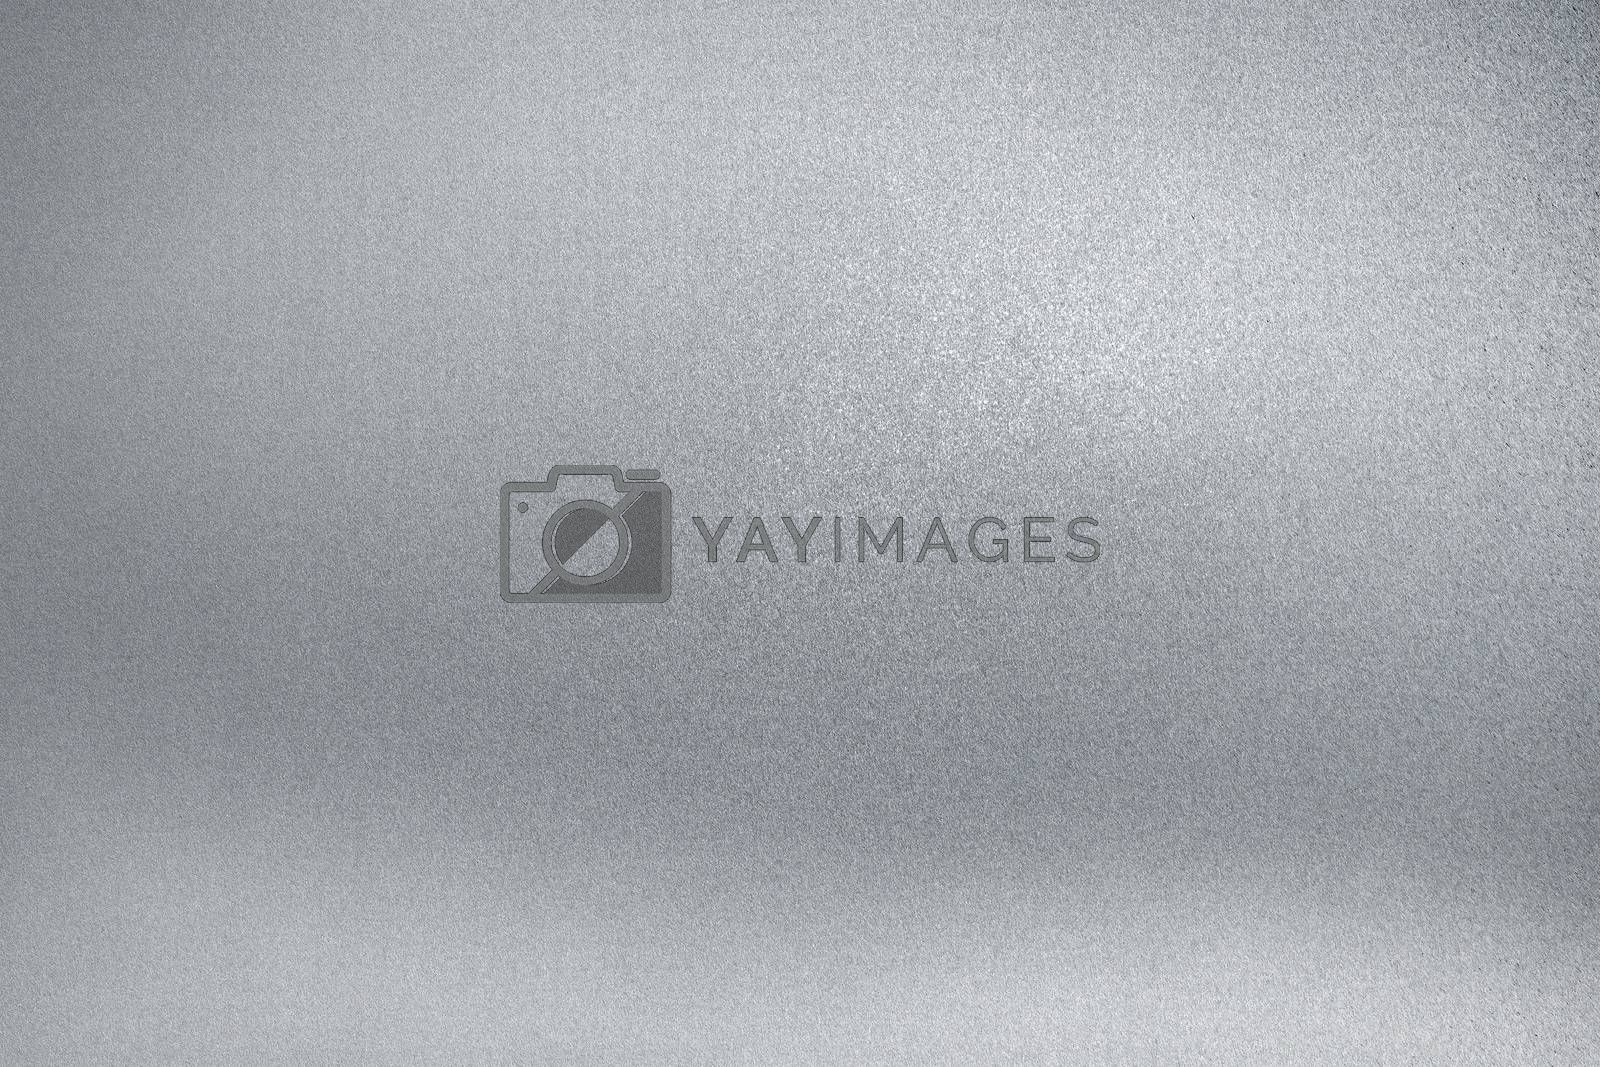 Royalty free image of Light gray rough metal wall, abstract texture background by mouu007